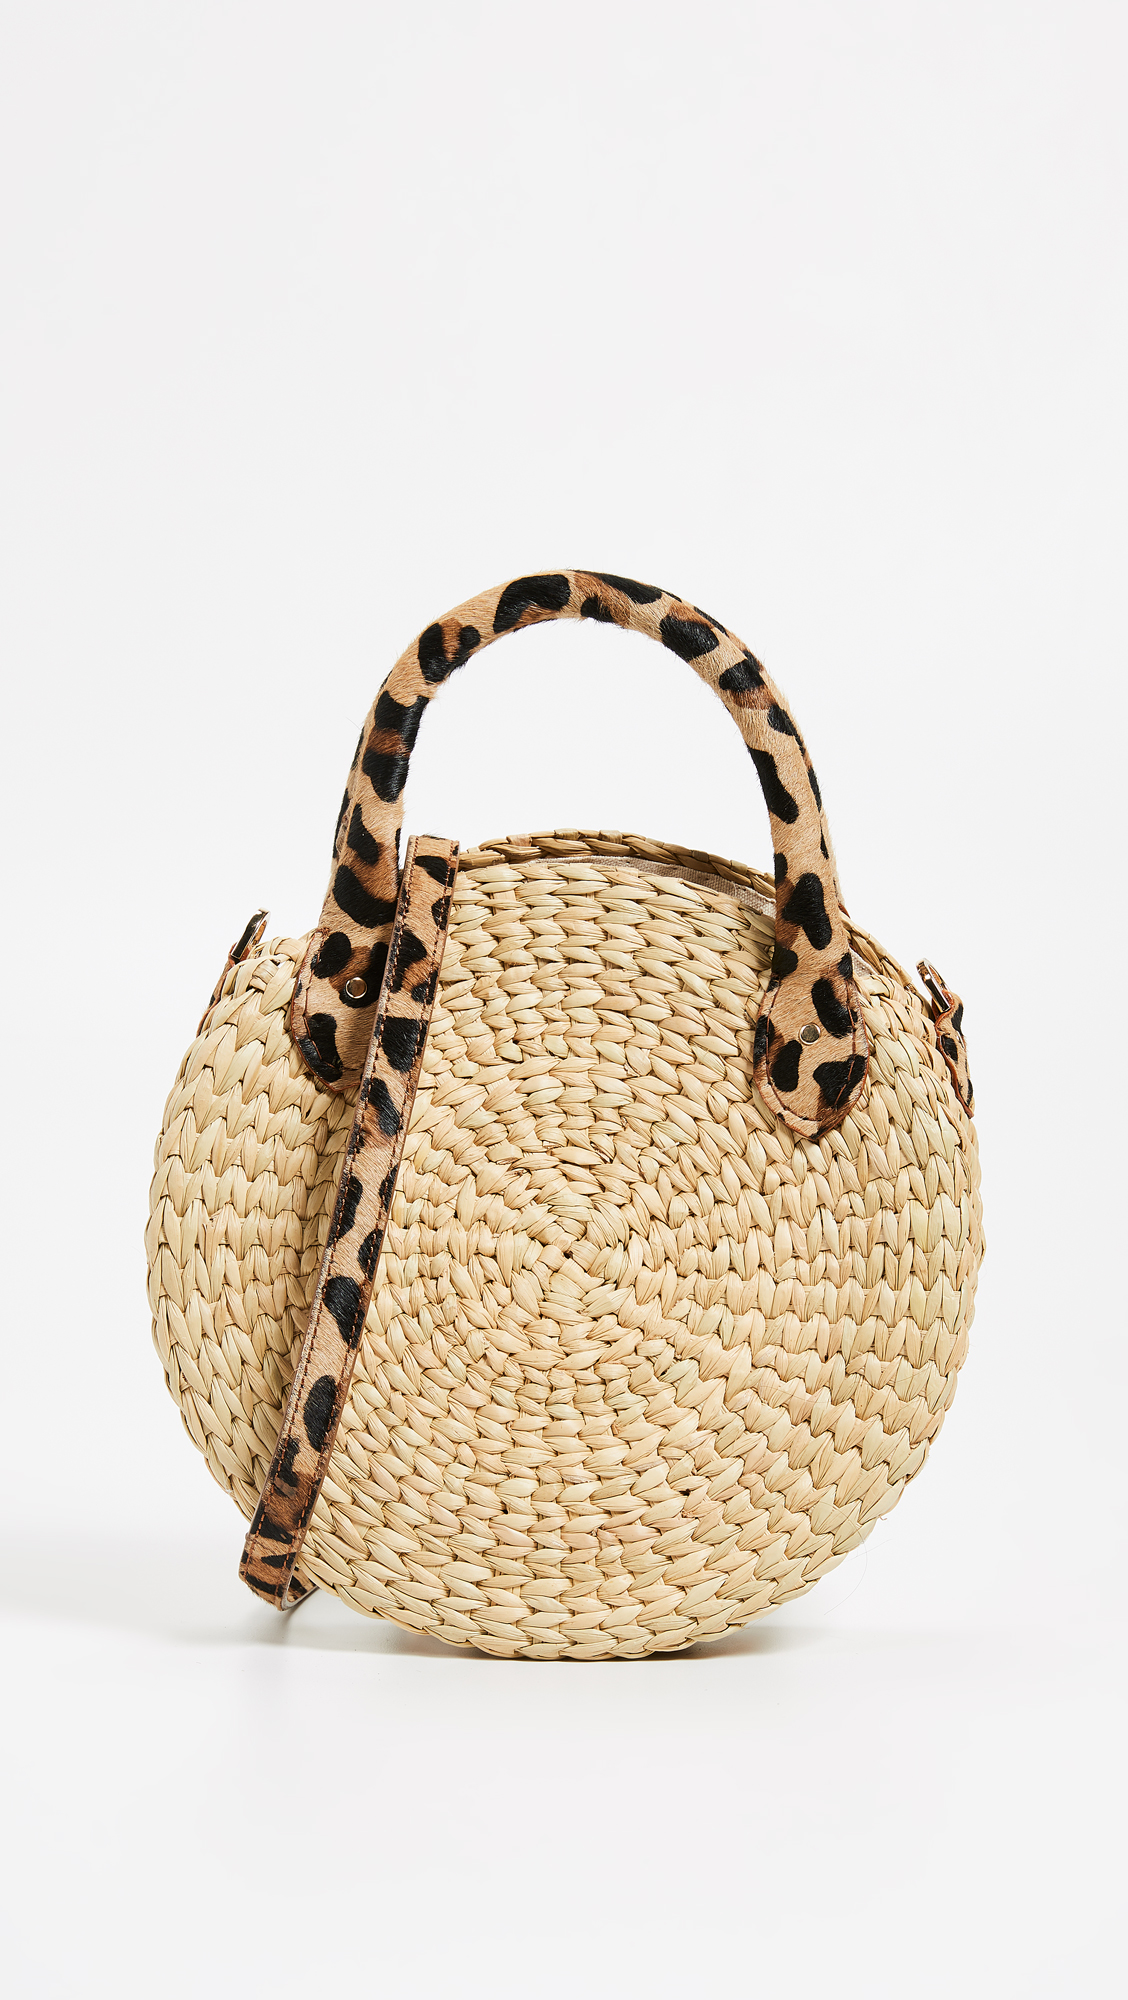 Straw Bag with Fur Leopard Print Handle